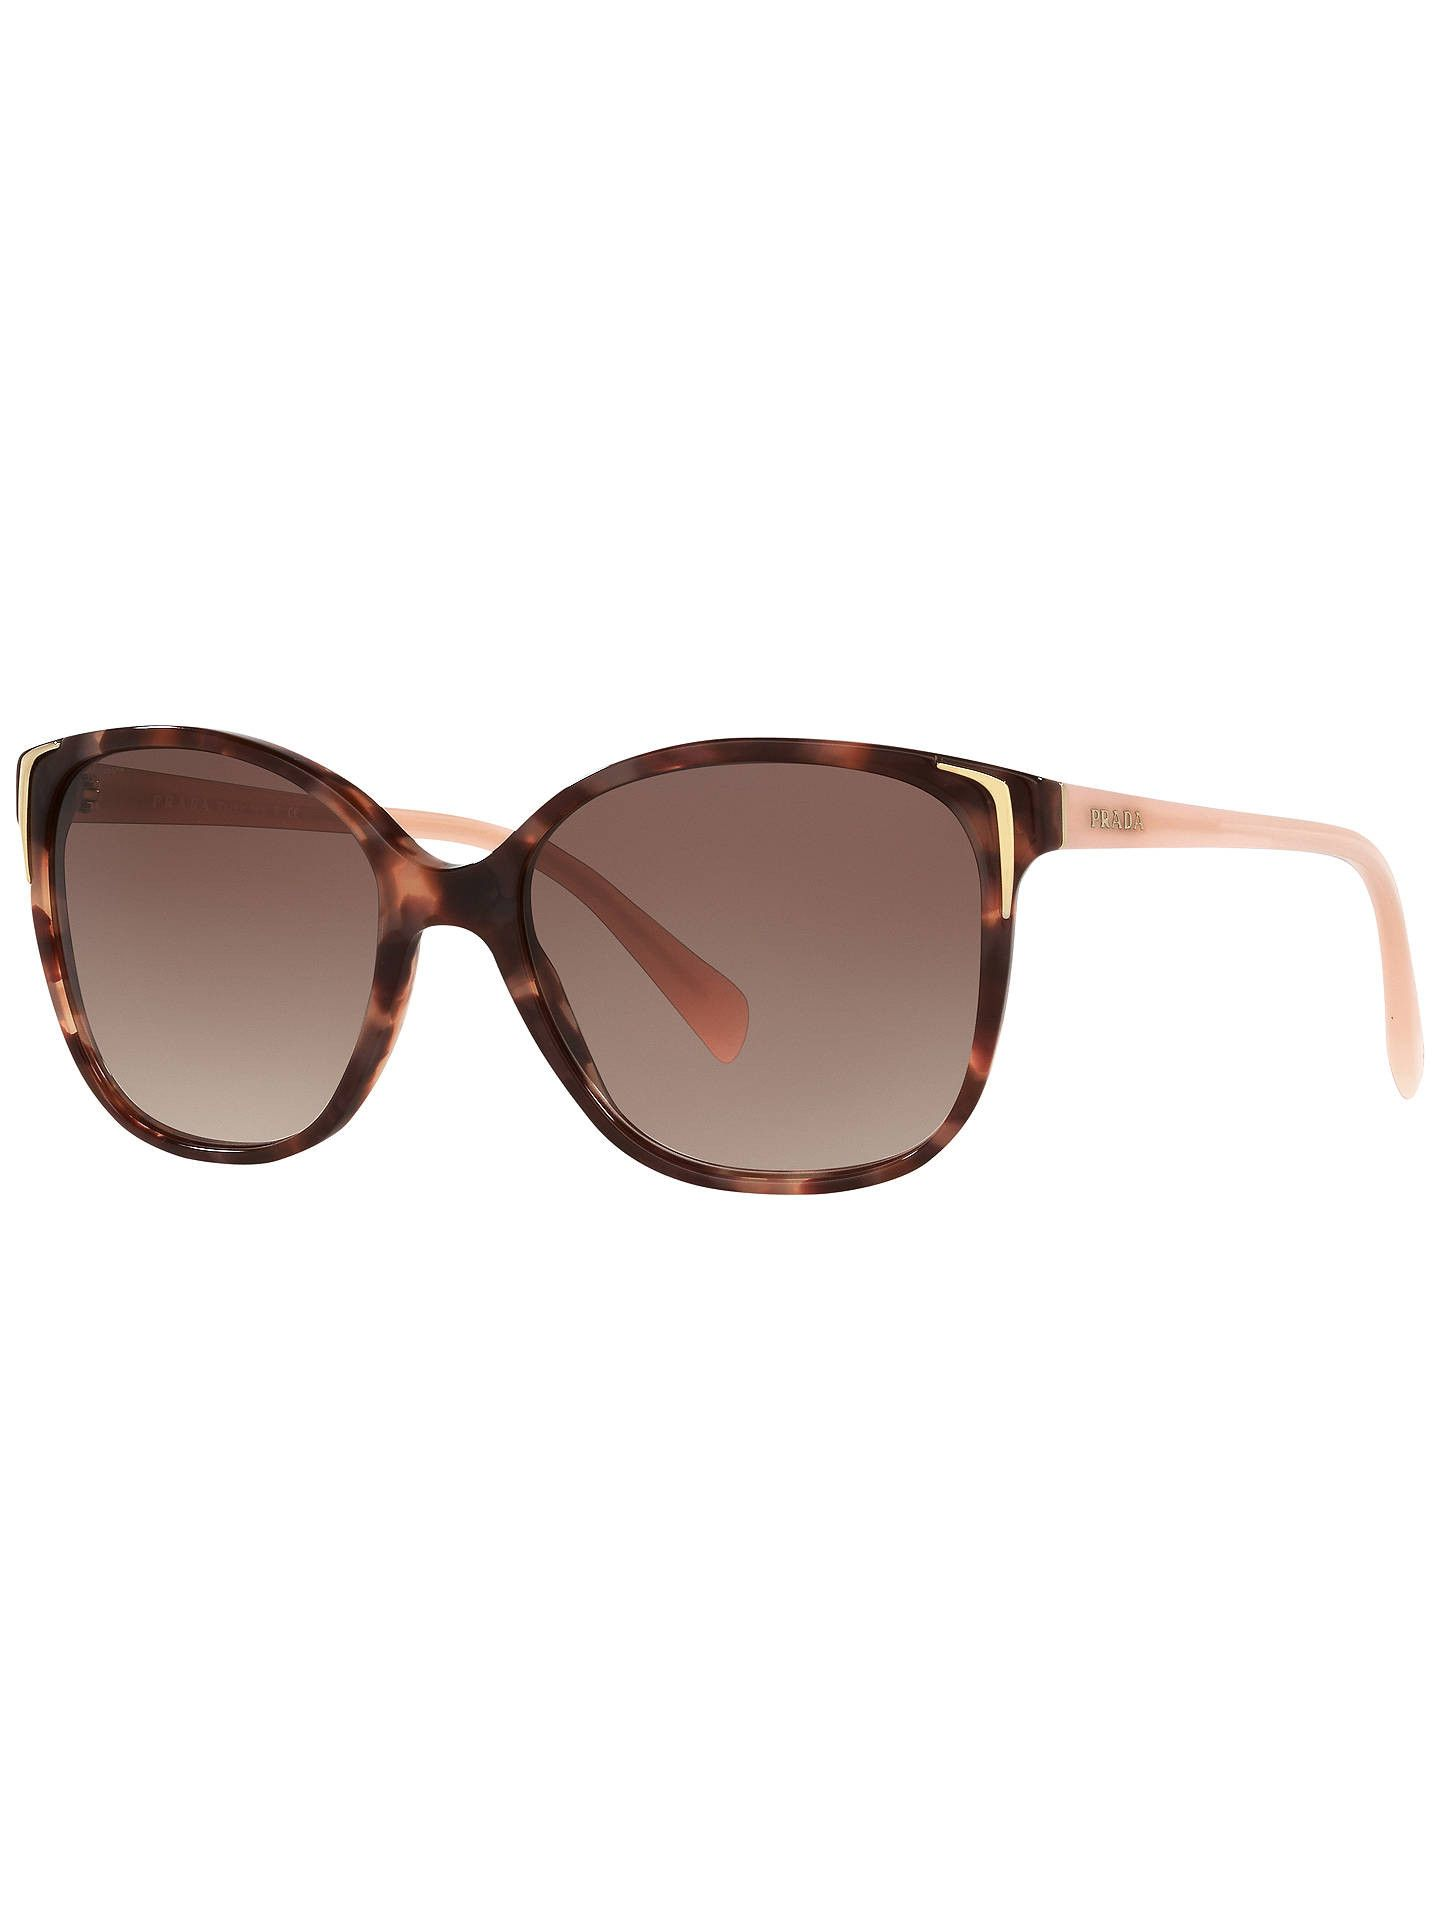 4cb99de6045 16 Amazing Prada tortoise Shell Sunglasses Smart Ideas - prada black tortoise  sunglasses